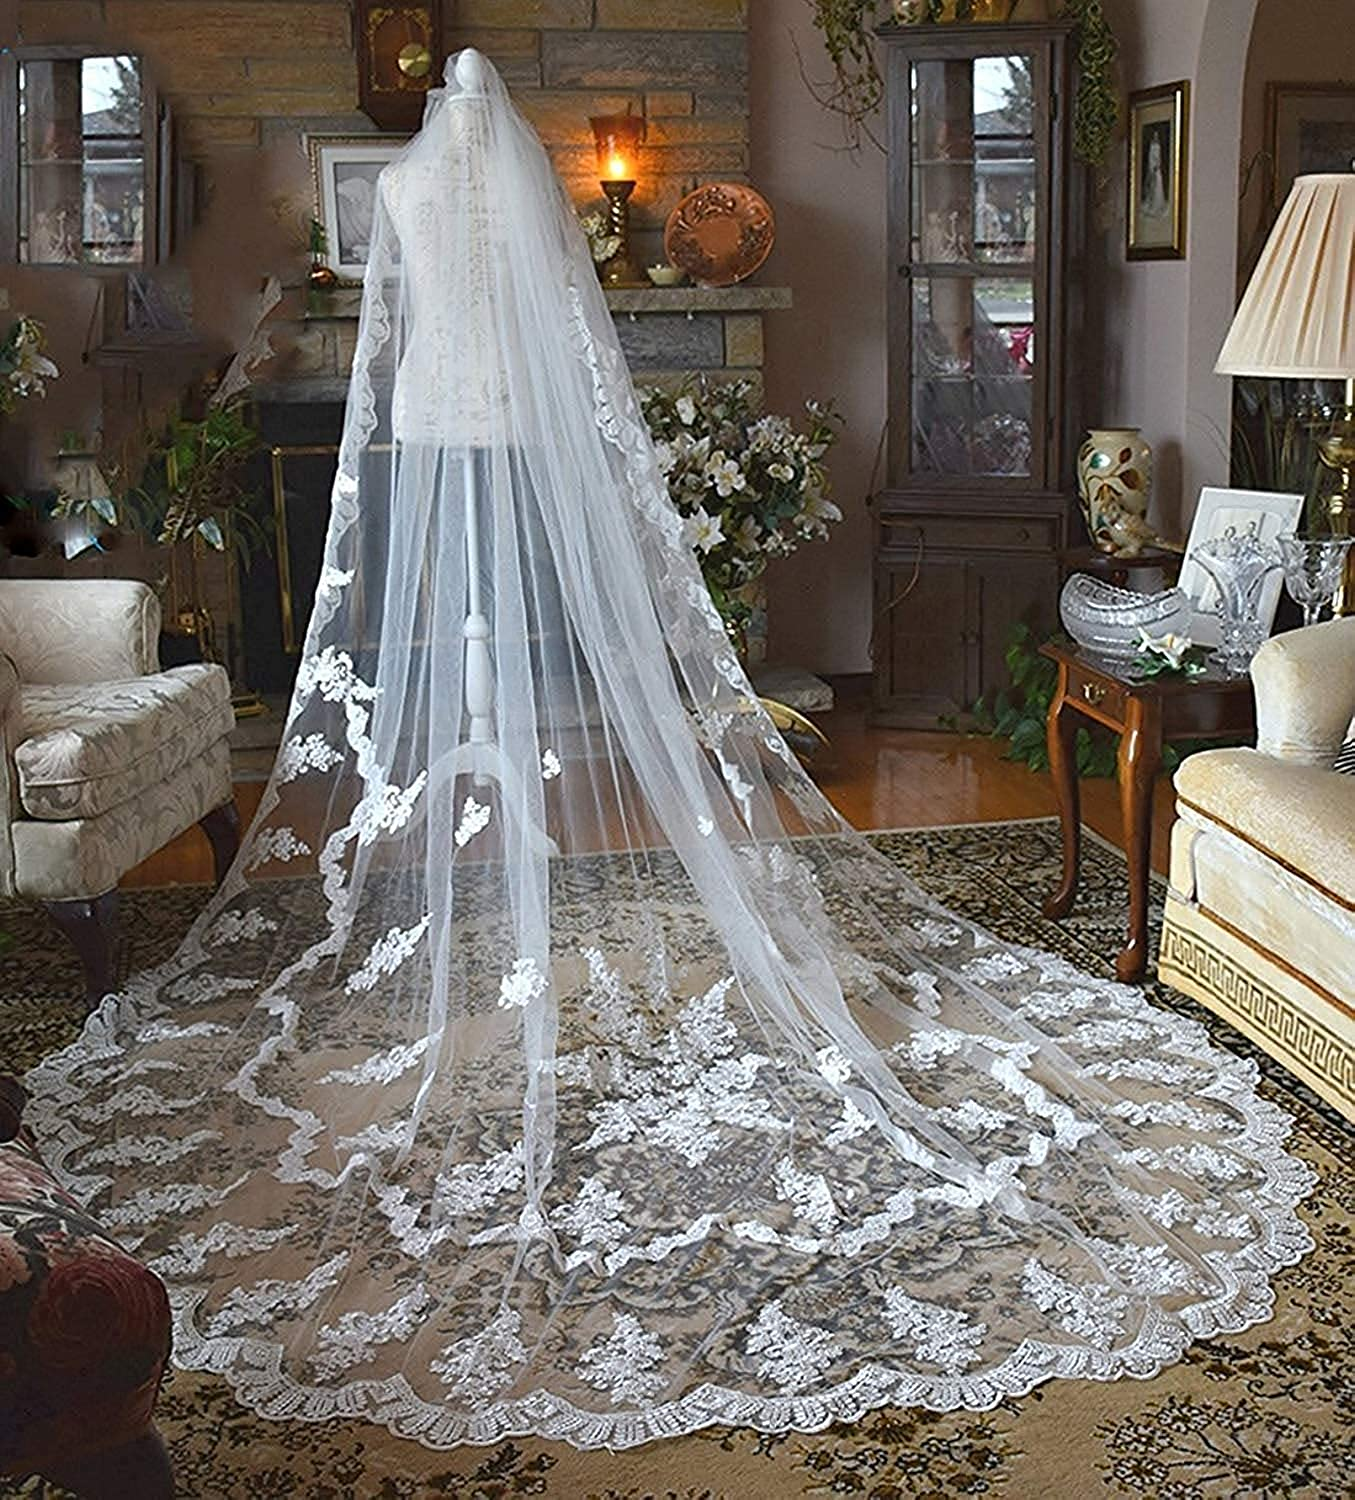 Fenghauvip Lace Appliques Wedding Veil Cathedral Veil for Brides 2 Tier with Comb